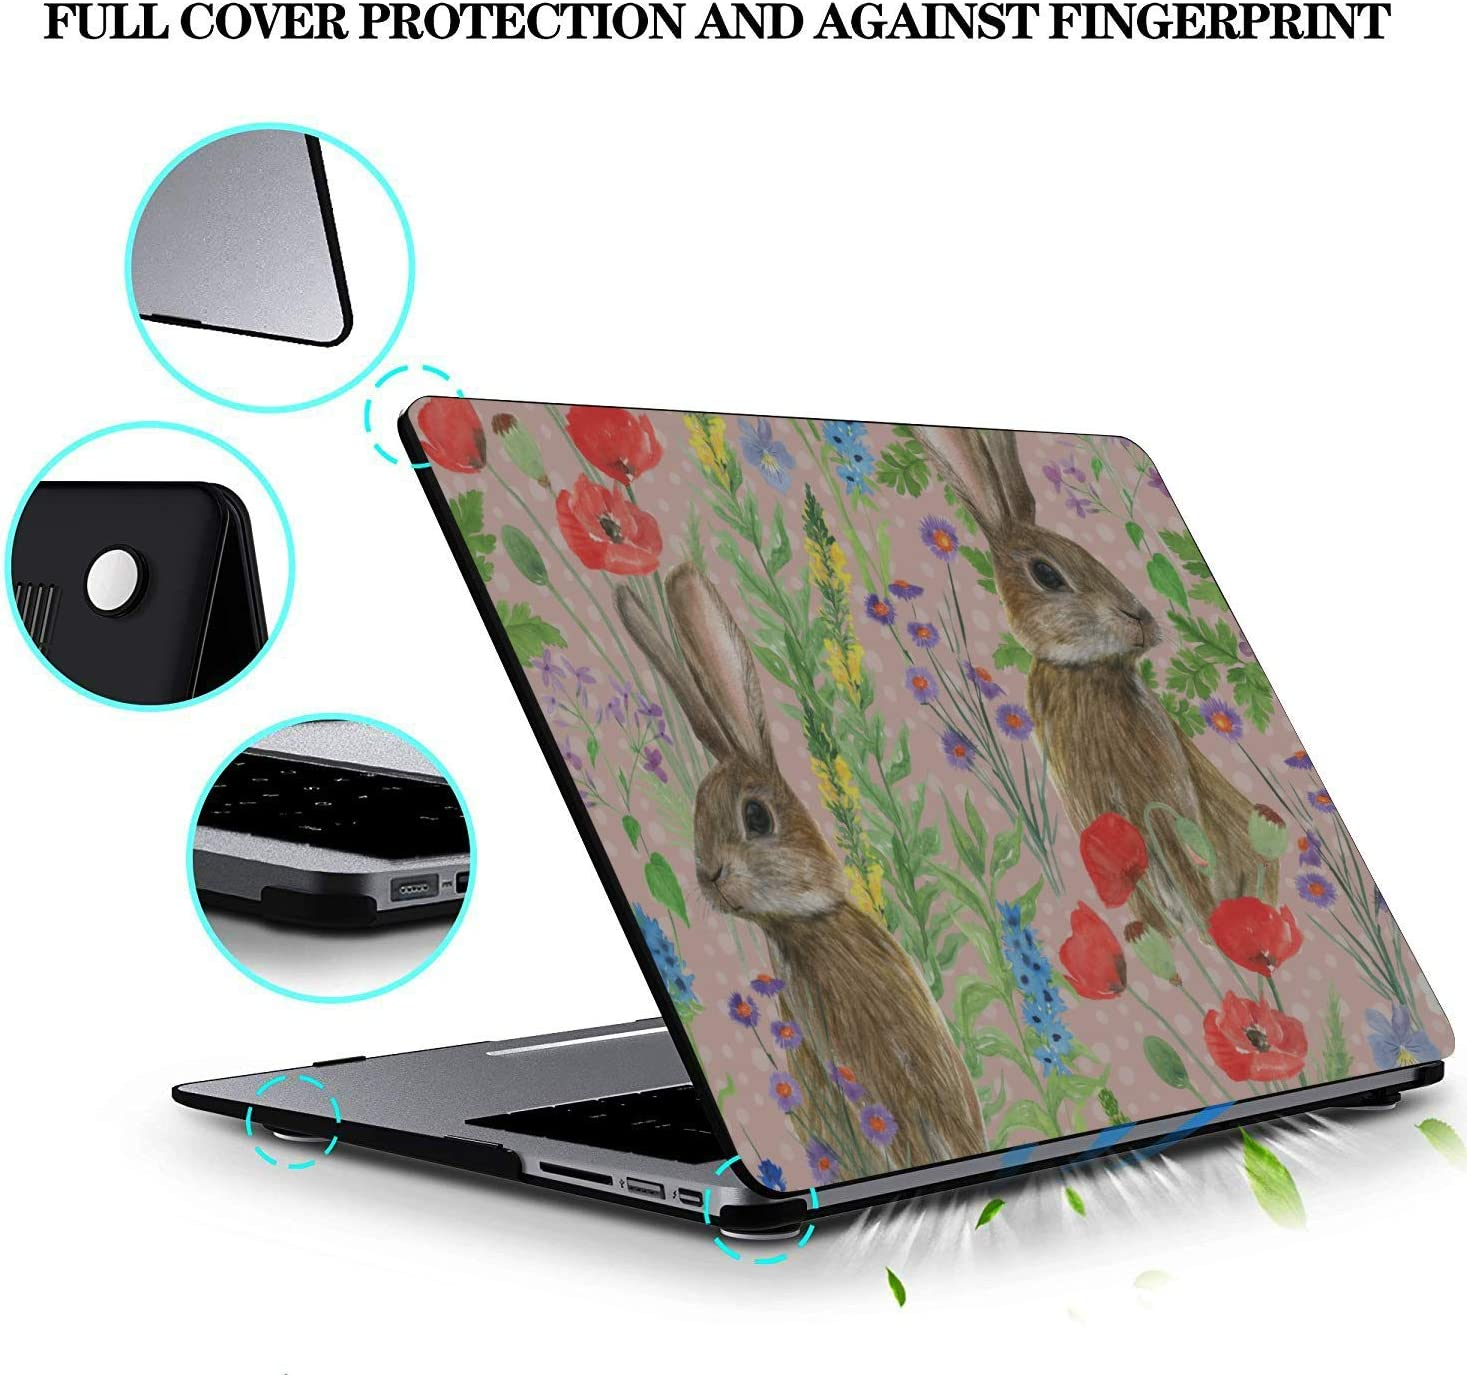 Laptop MacBook Pro Sophisticated Cute Cartoon Painting Plastic Hard Shell Compatible Mac Air 11 Pro 13 15 MacBook Pro Shell Protection for MacBook 2016-2019 Version